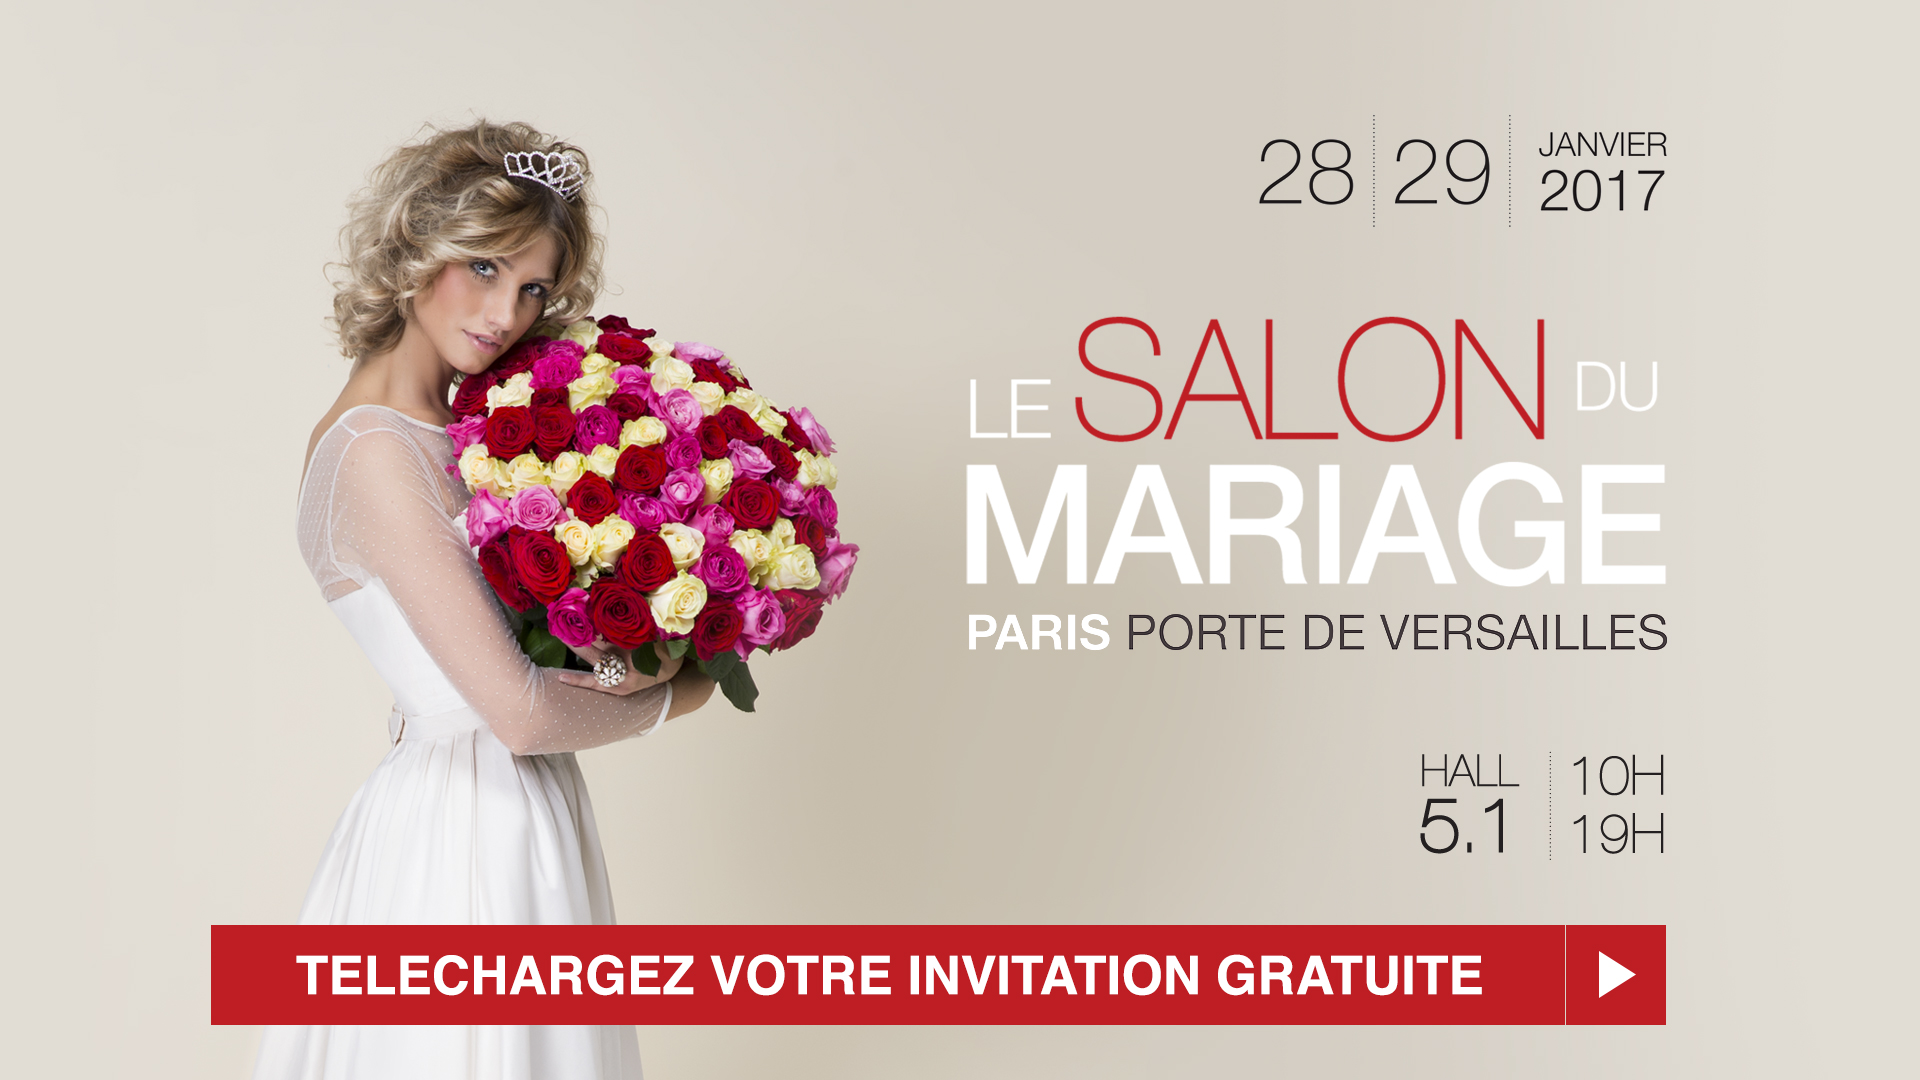 Salon du mariage paris les 28 et 29 janvier 2017 for Salon airsoft 2017 paris